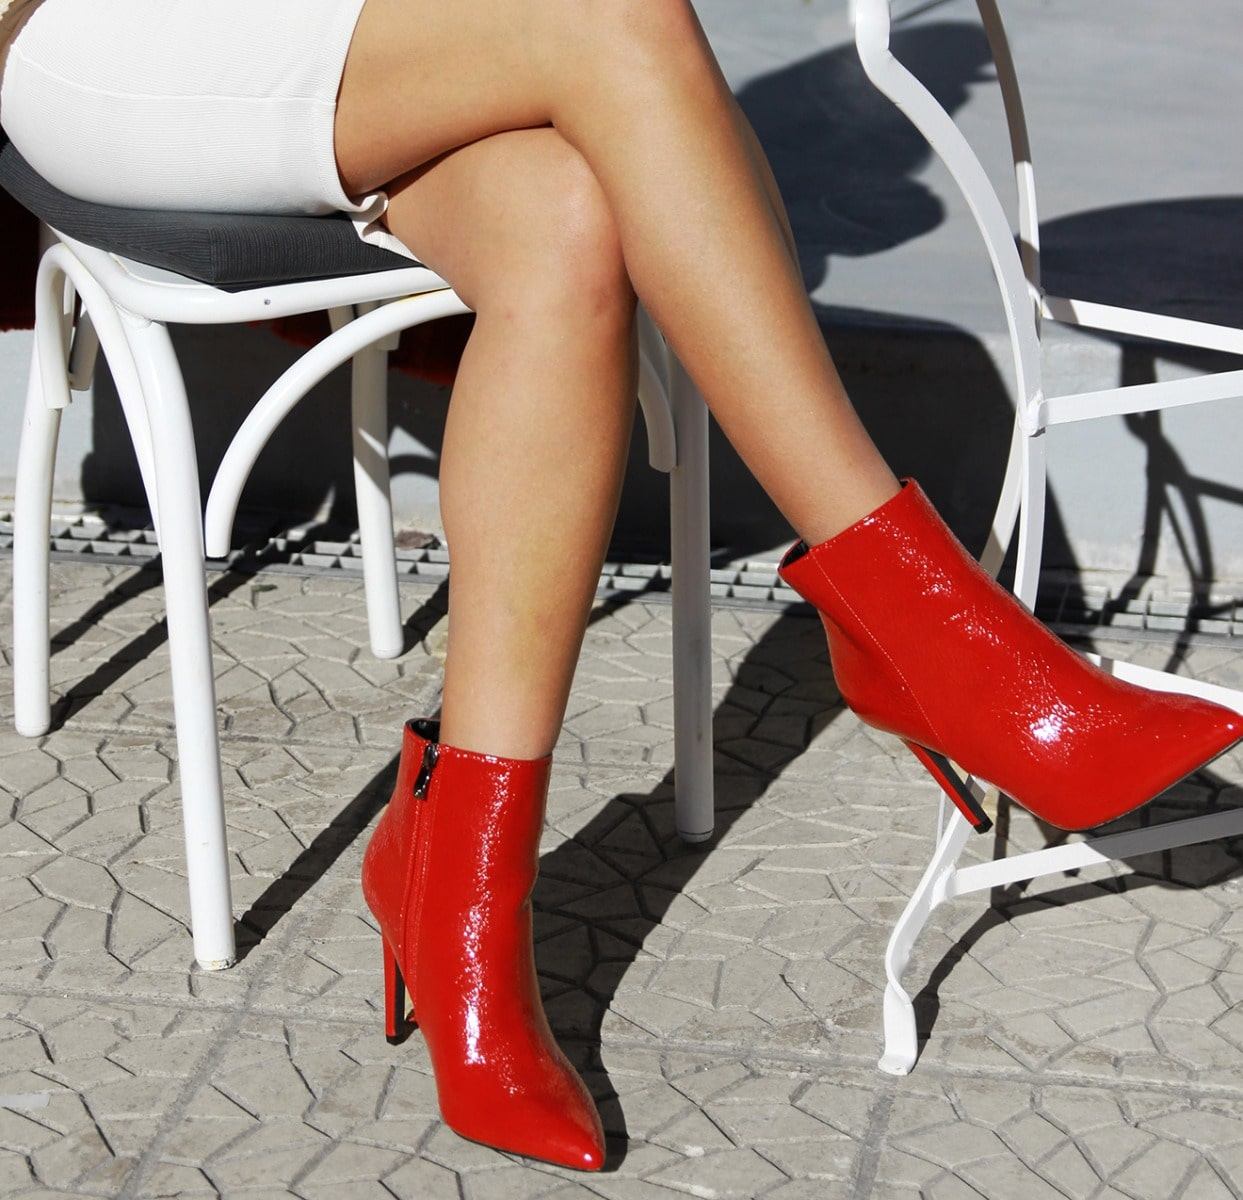 MIGATO red patent high heel bootie ES0528-L08